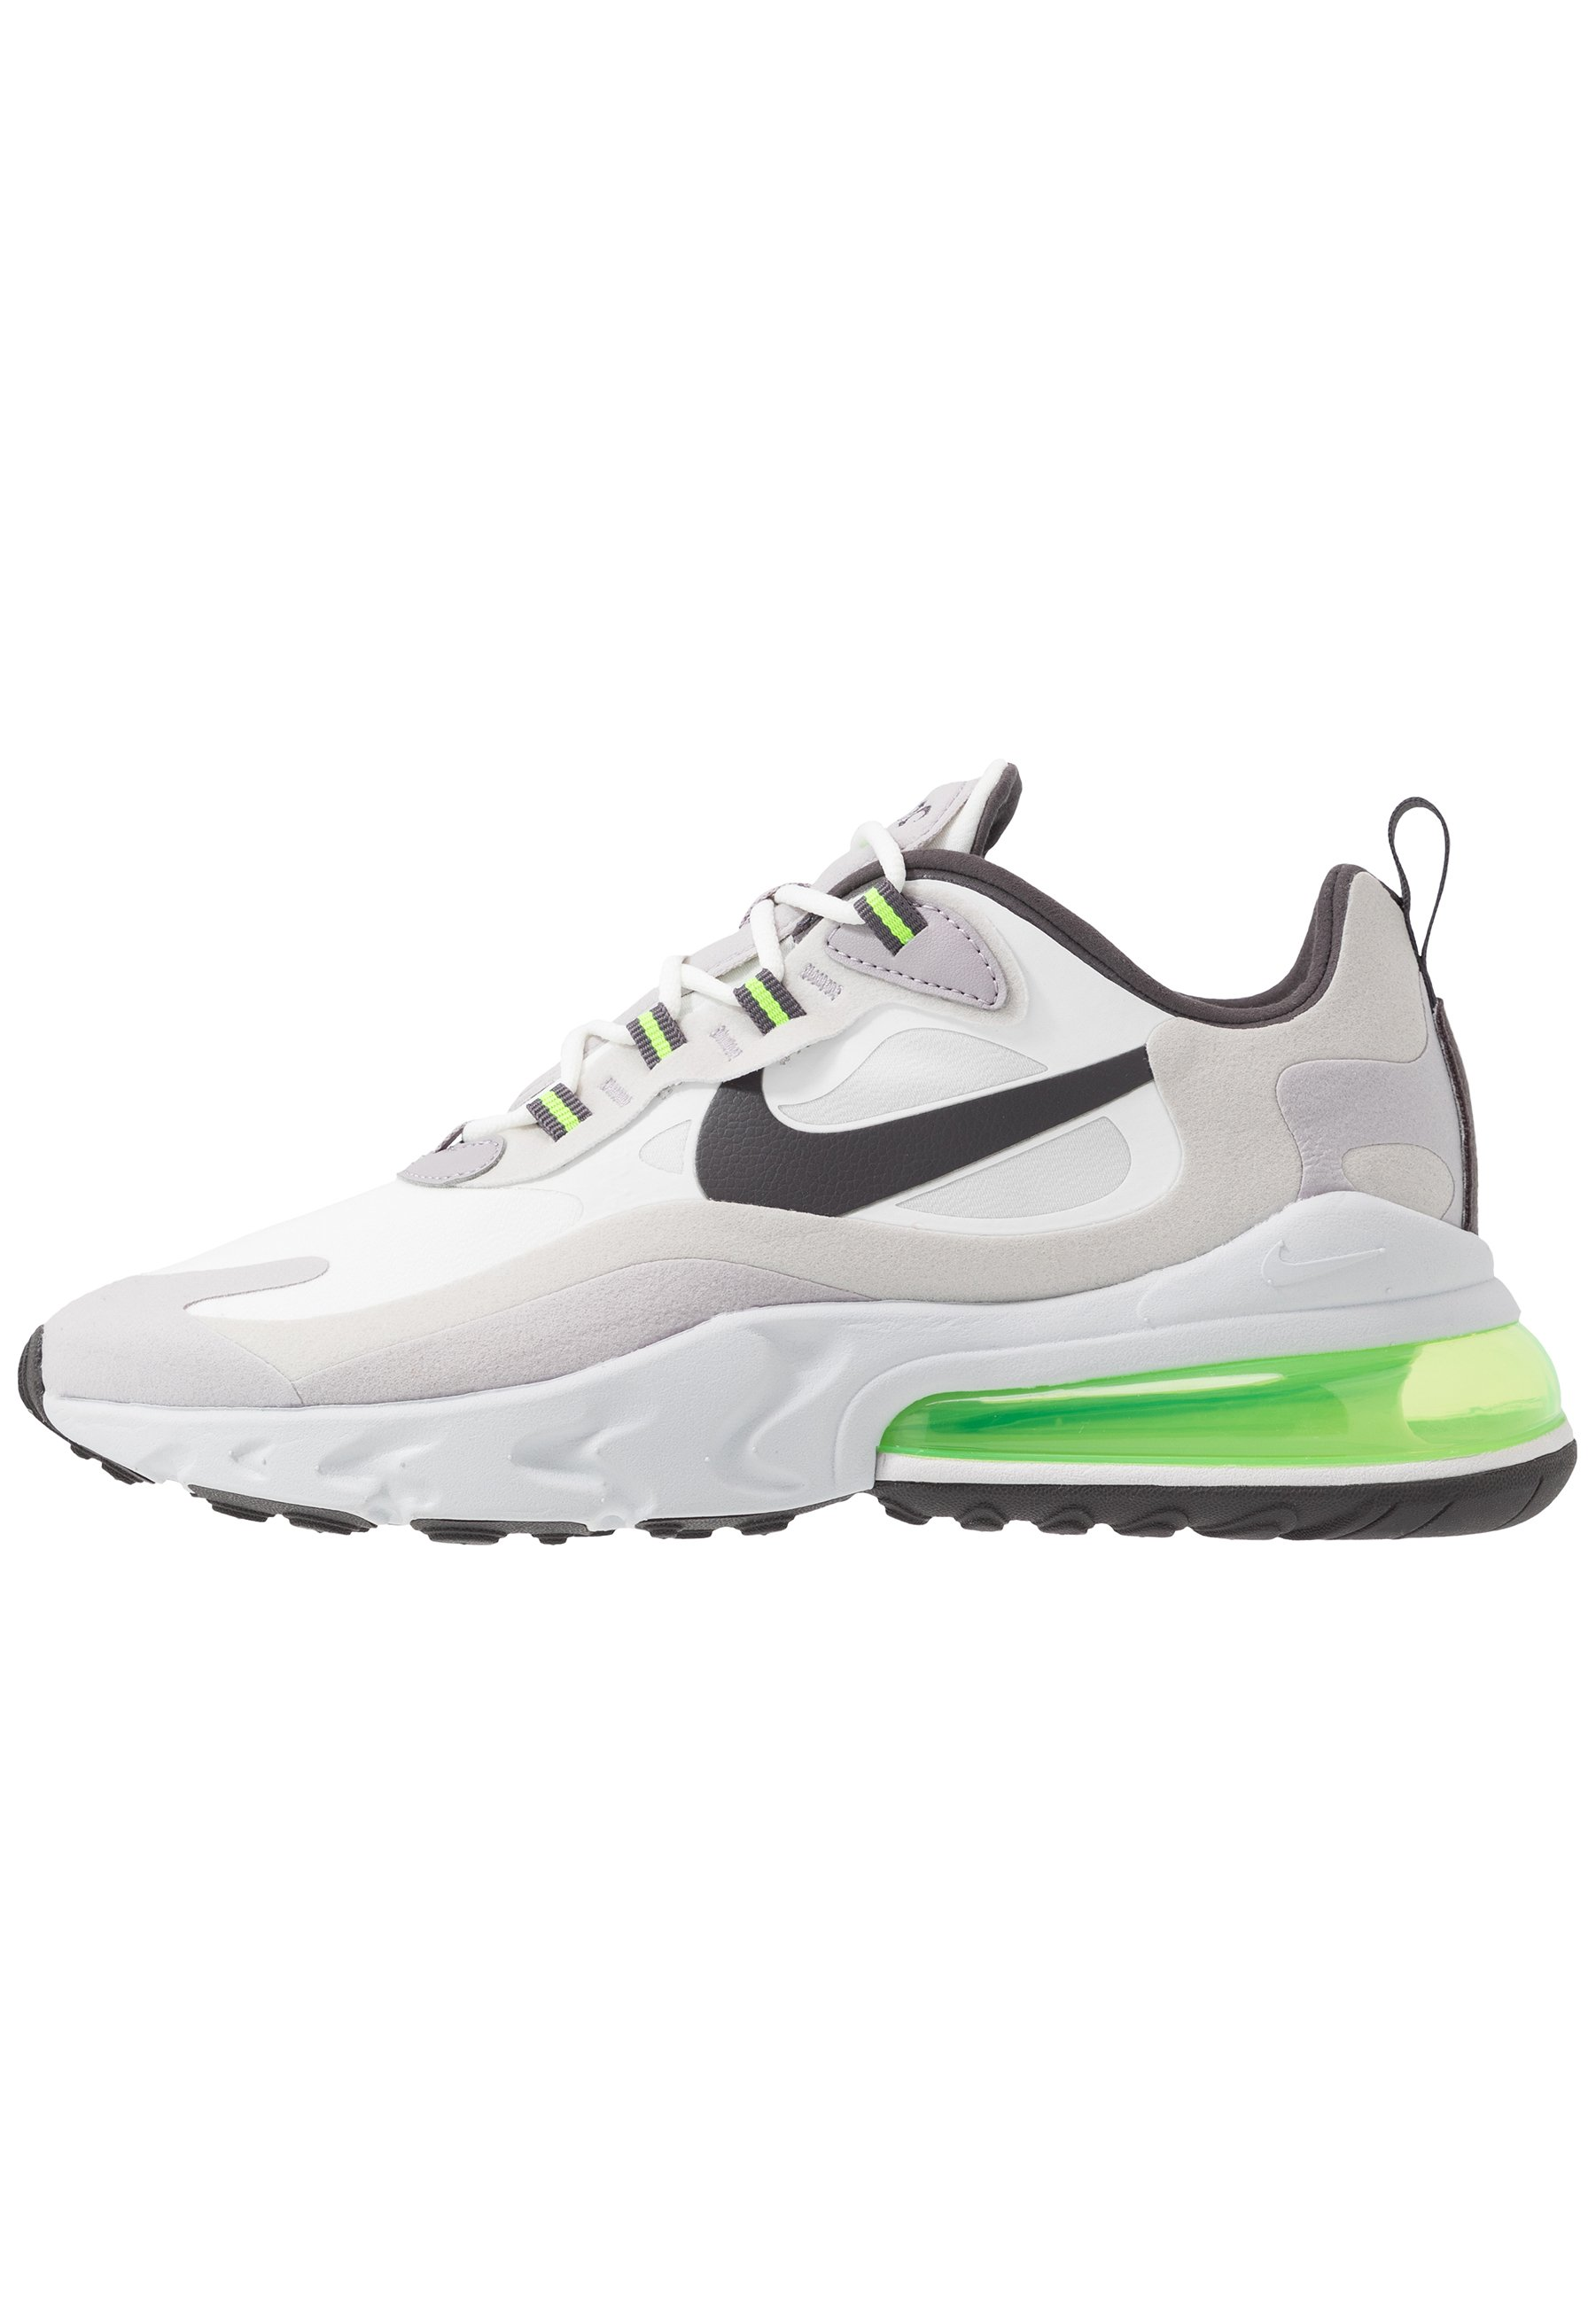 AIR MAX REACT Sneakers laag summit whiteelectric greenvast greysilver lilacthunder grey